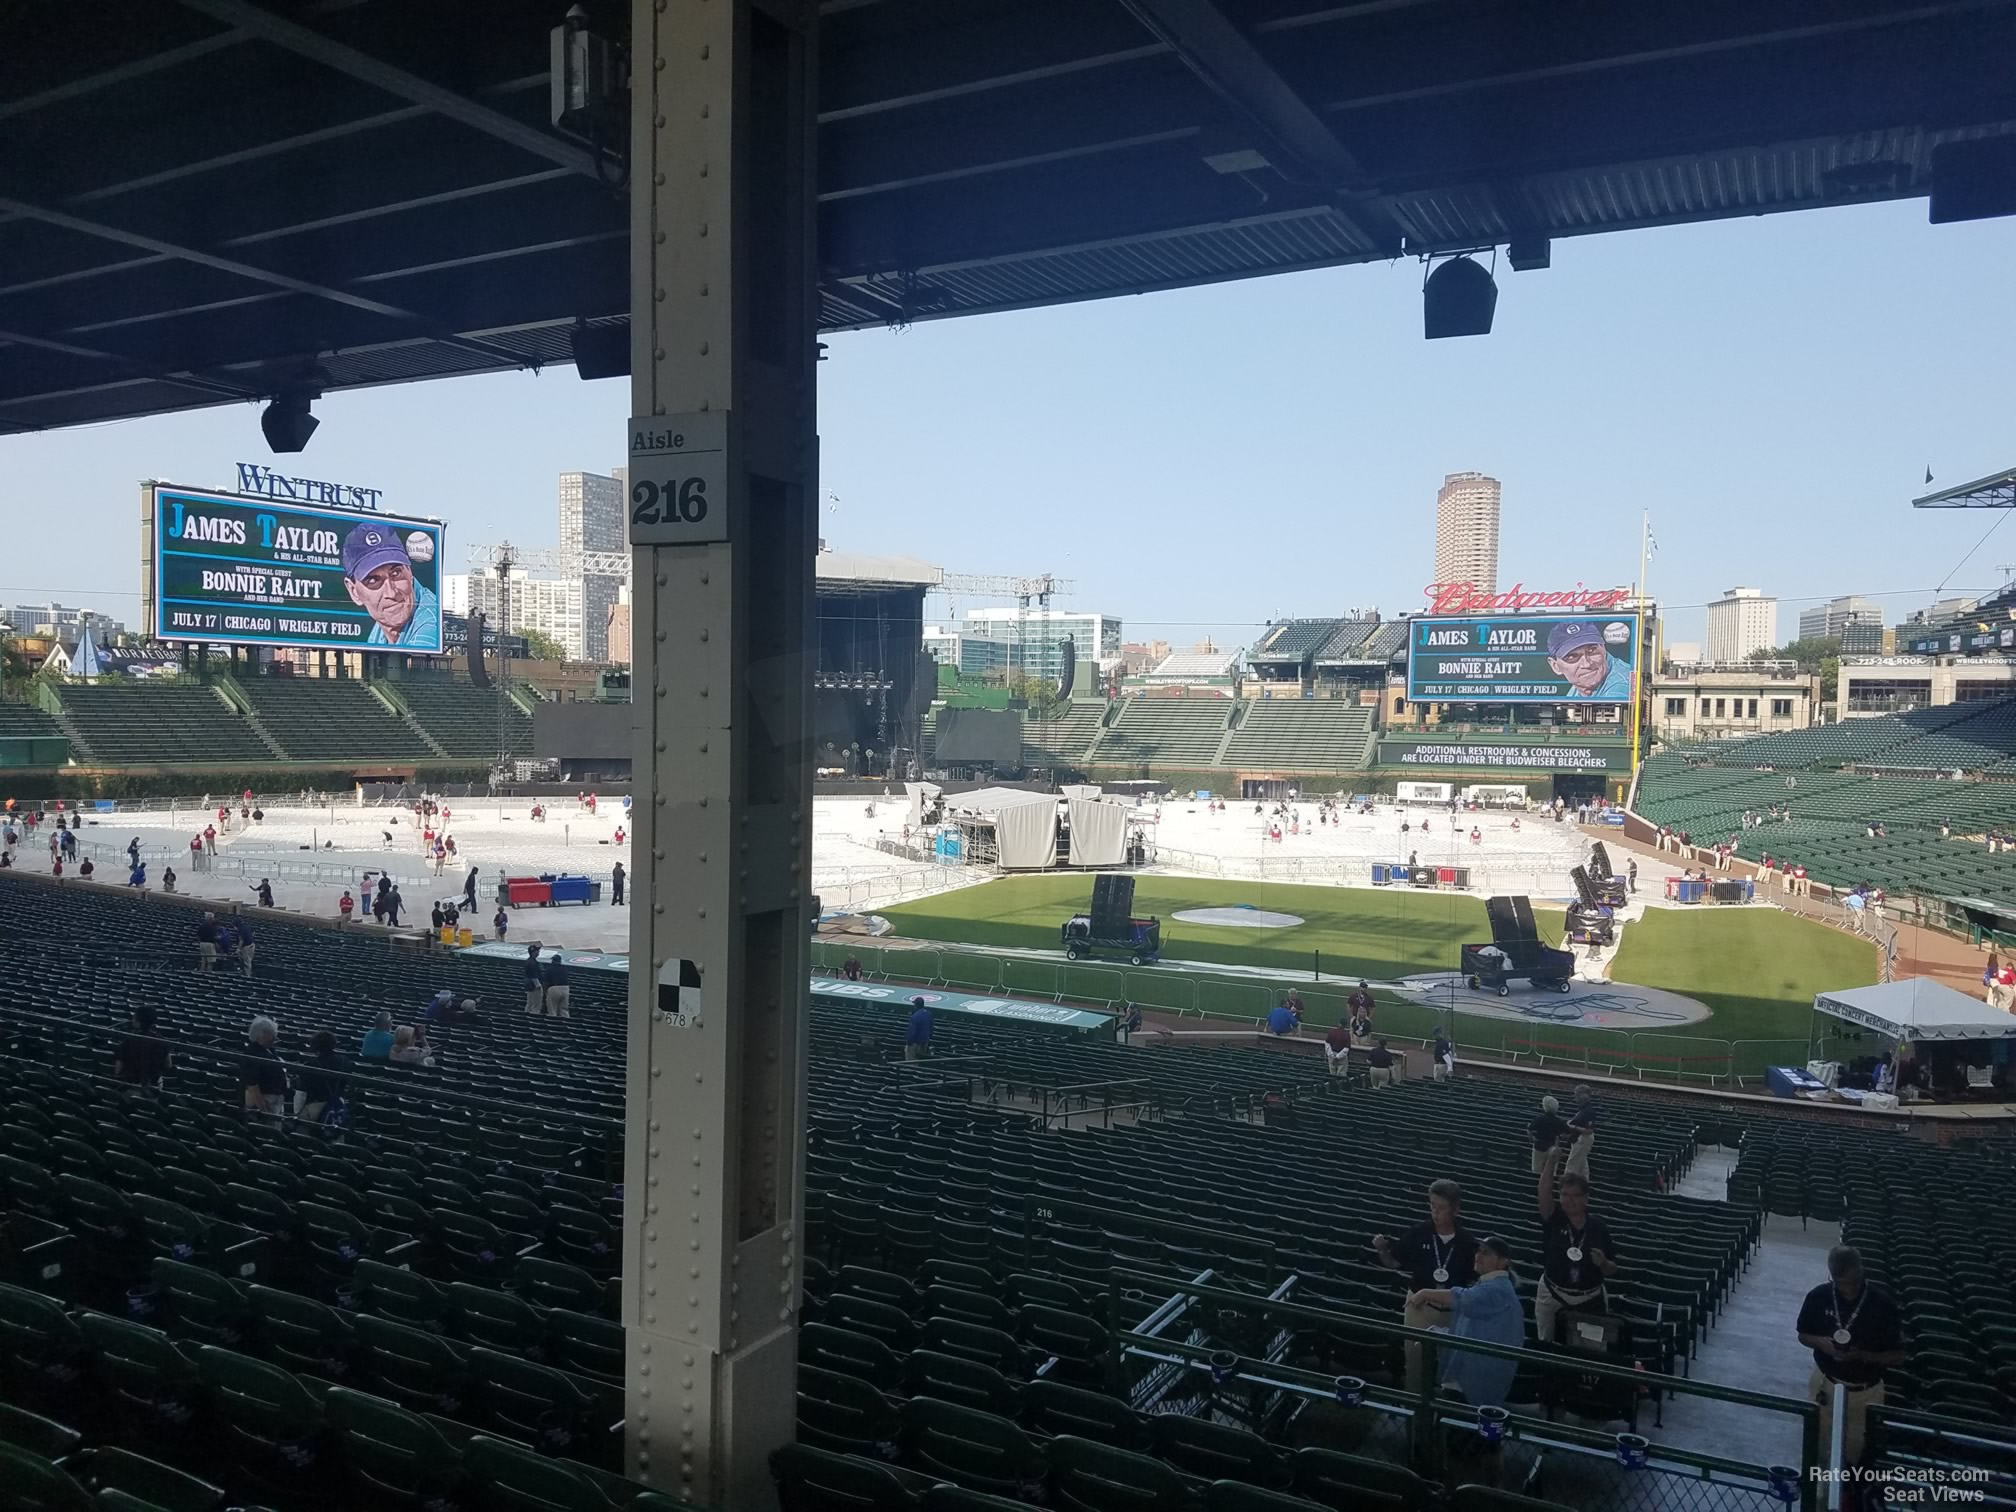 Wrigley Field Section 216 Concert Seating - RateYourSeats.com